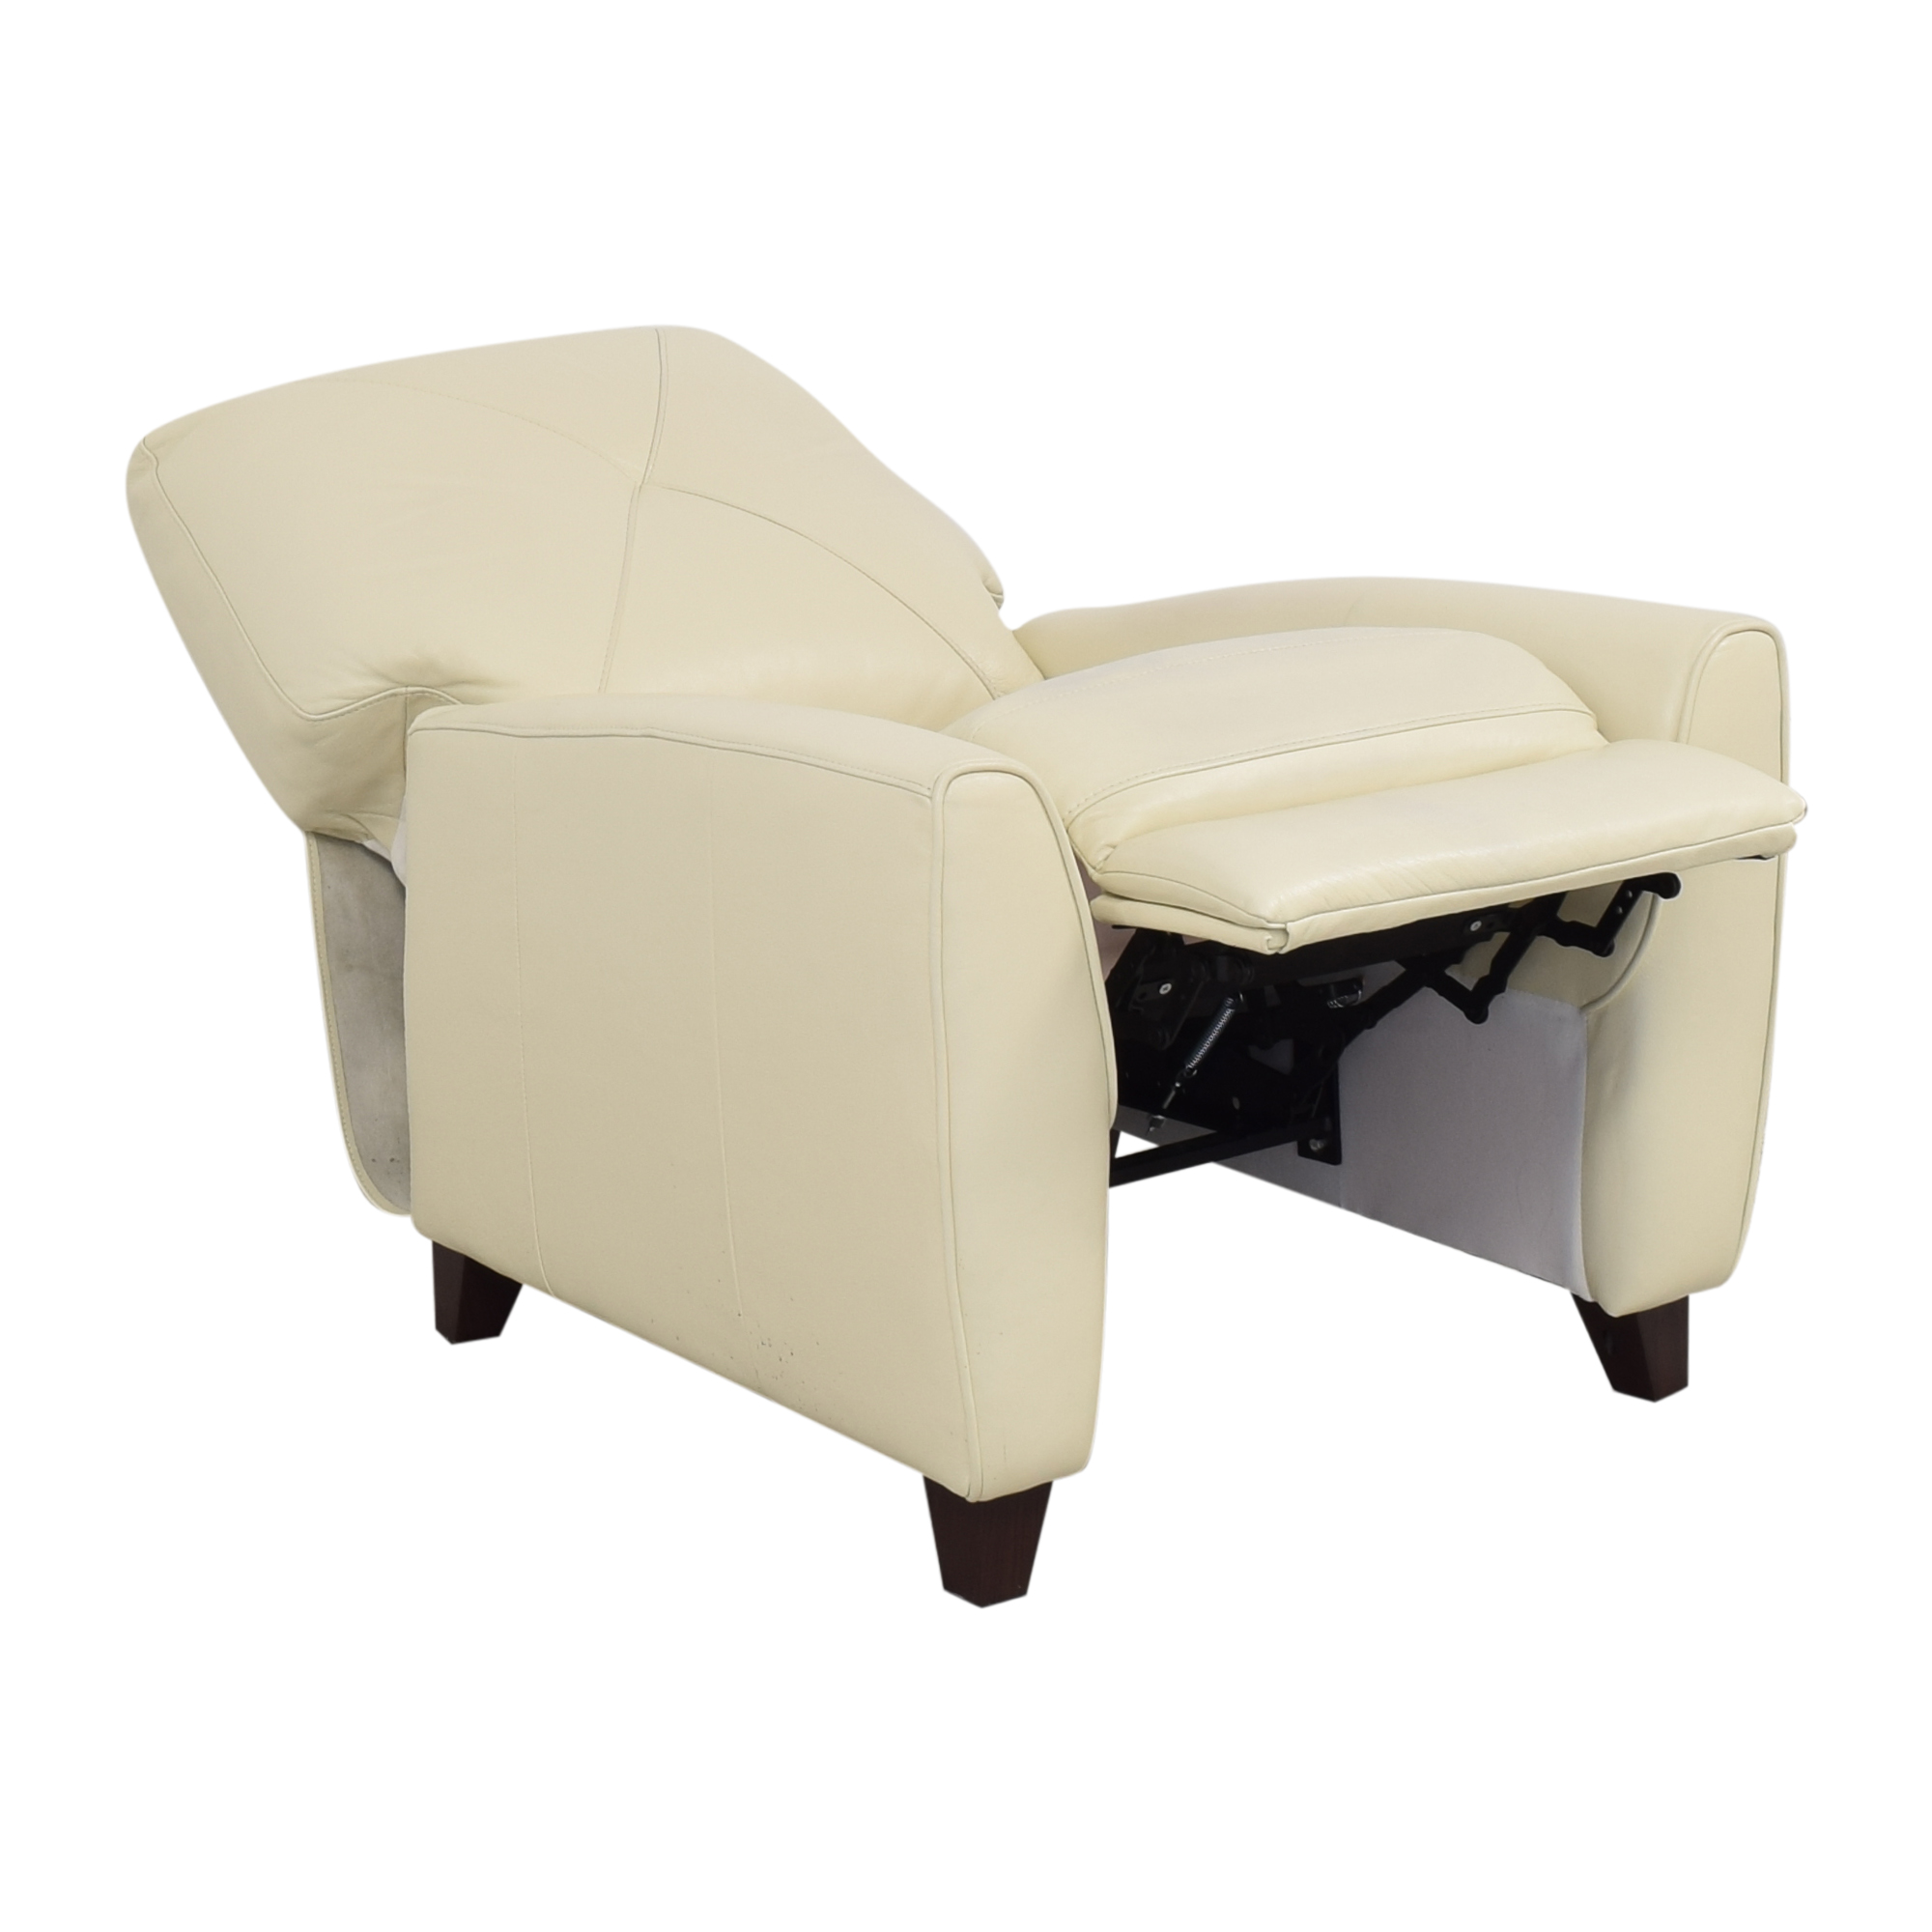 buy Macy's Myia Pushback Reclining Chair Macy's Accent Chairs